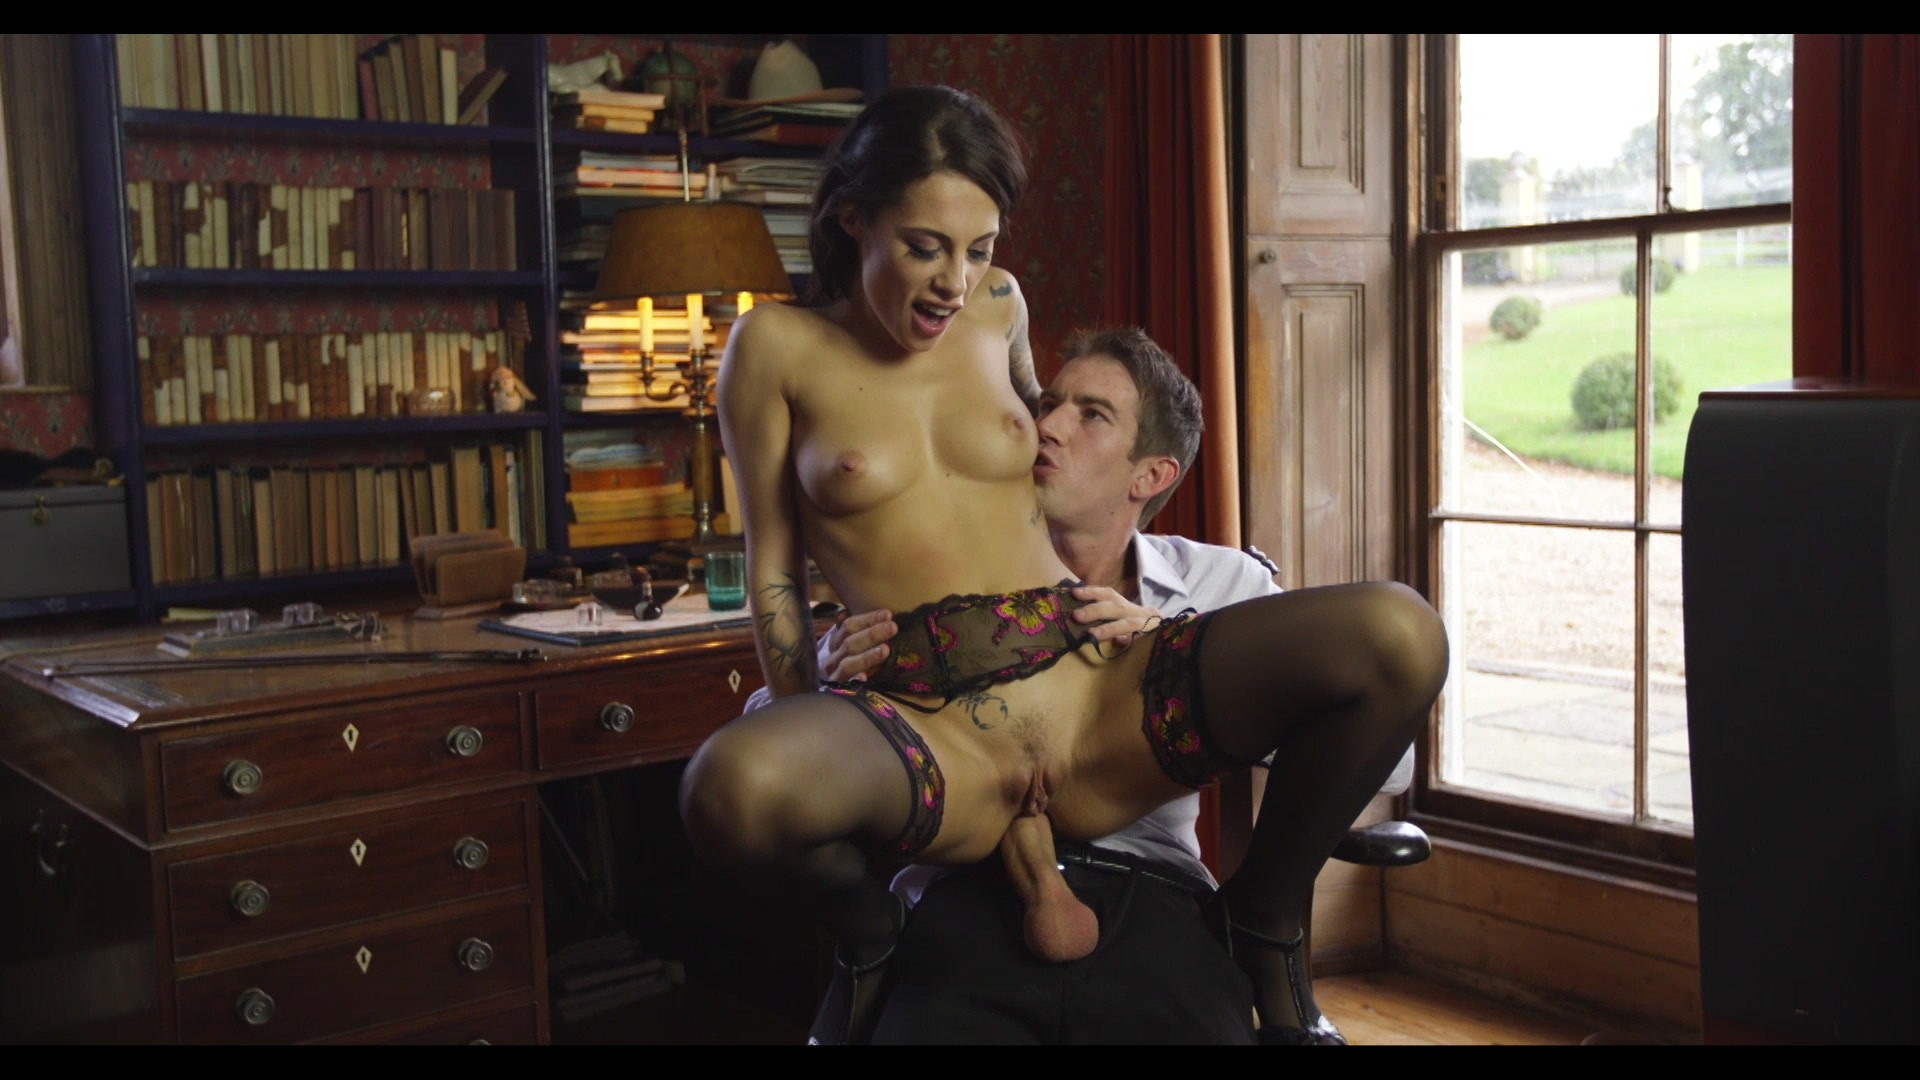 Scene with Nikita Belluci - image 18 out of 20